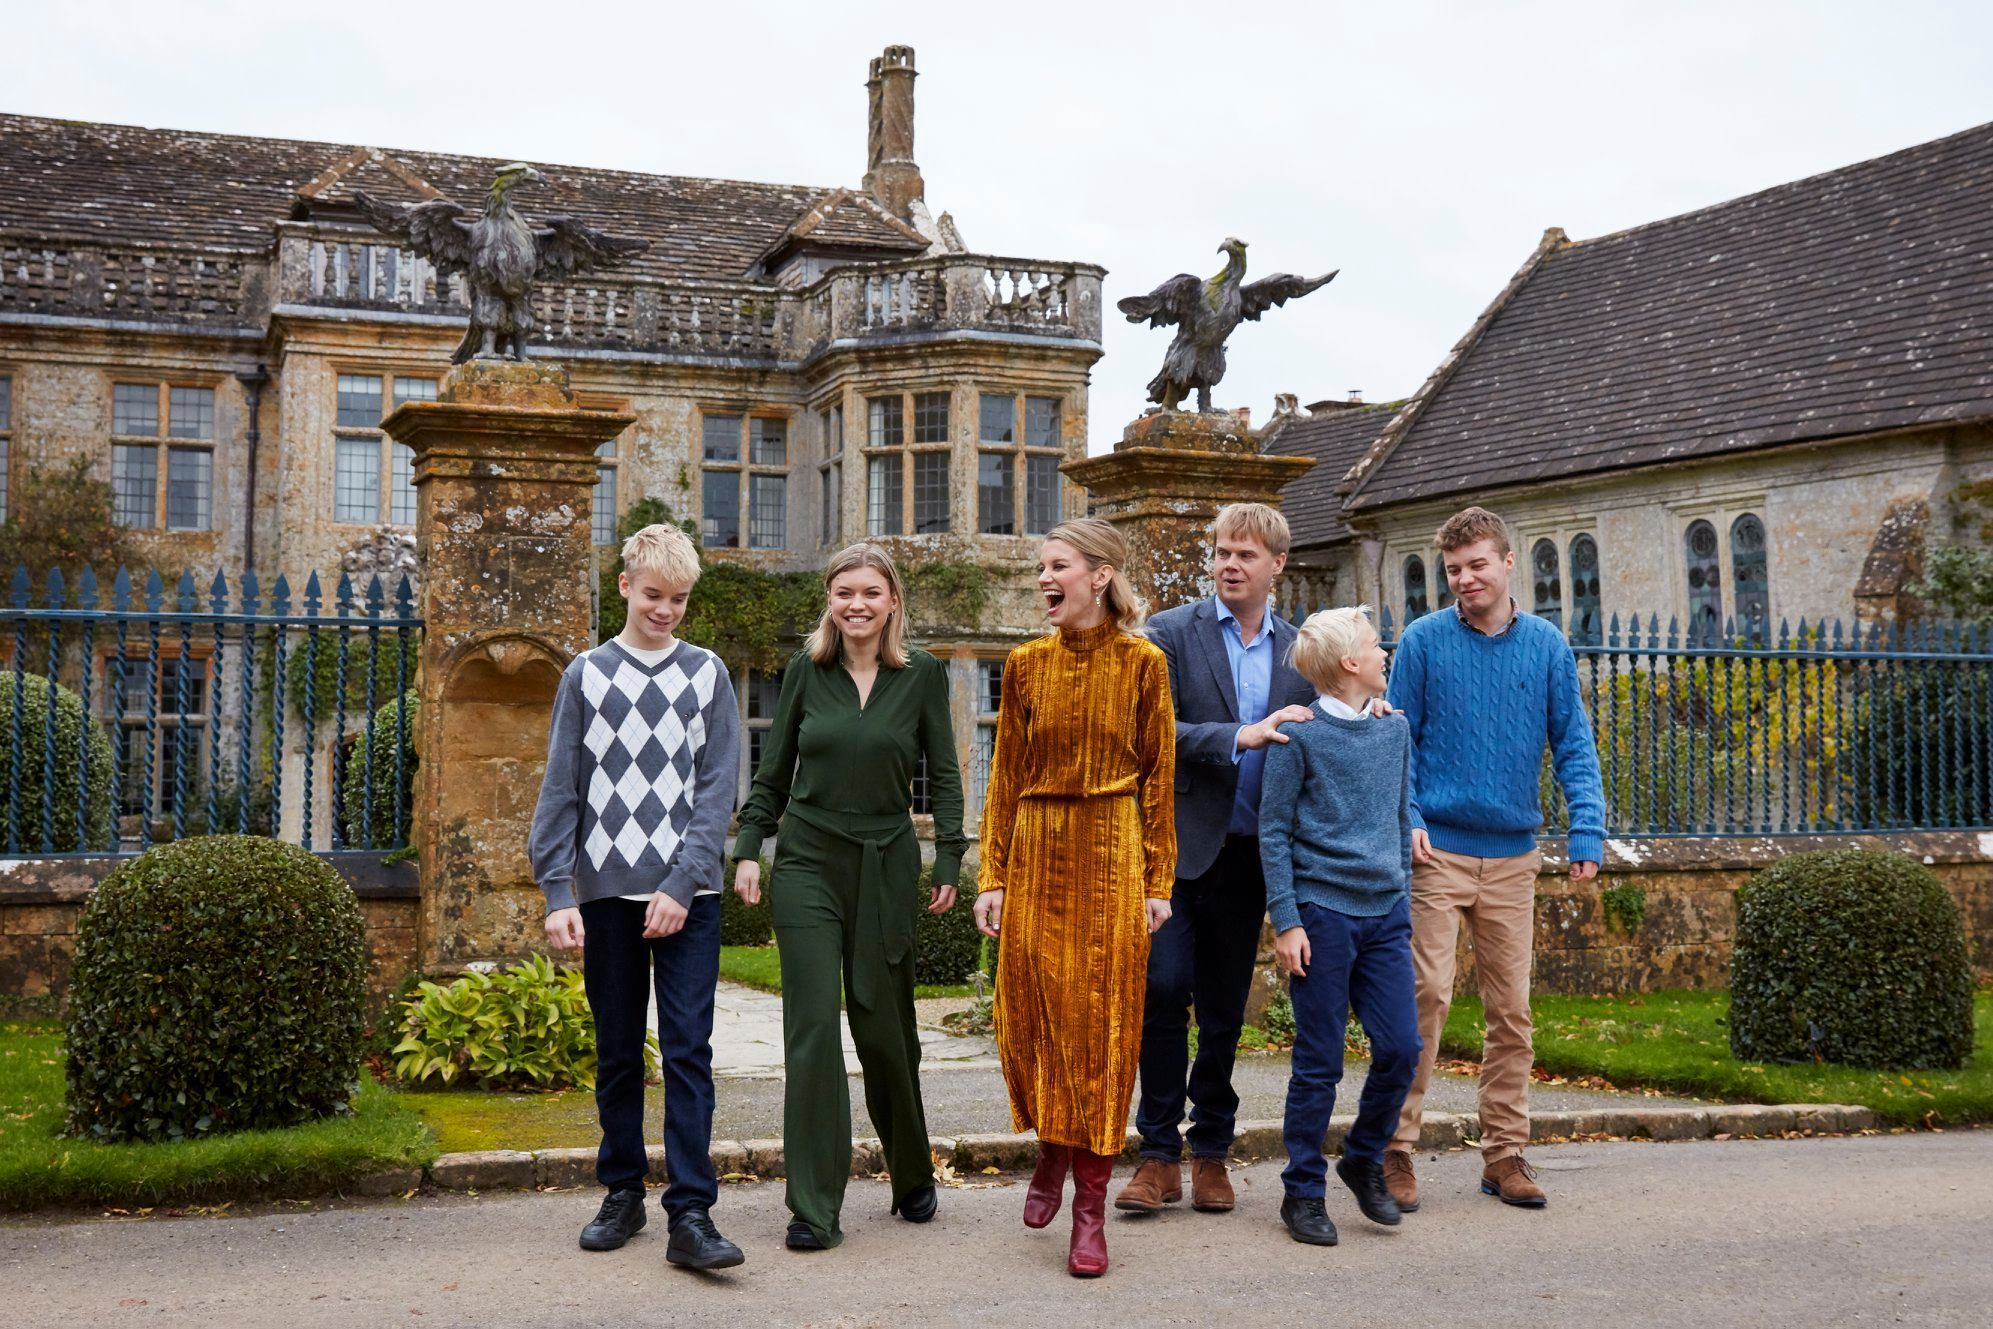 West Dorset attraction to feature on TV series